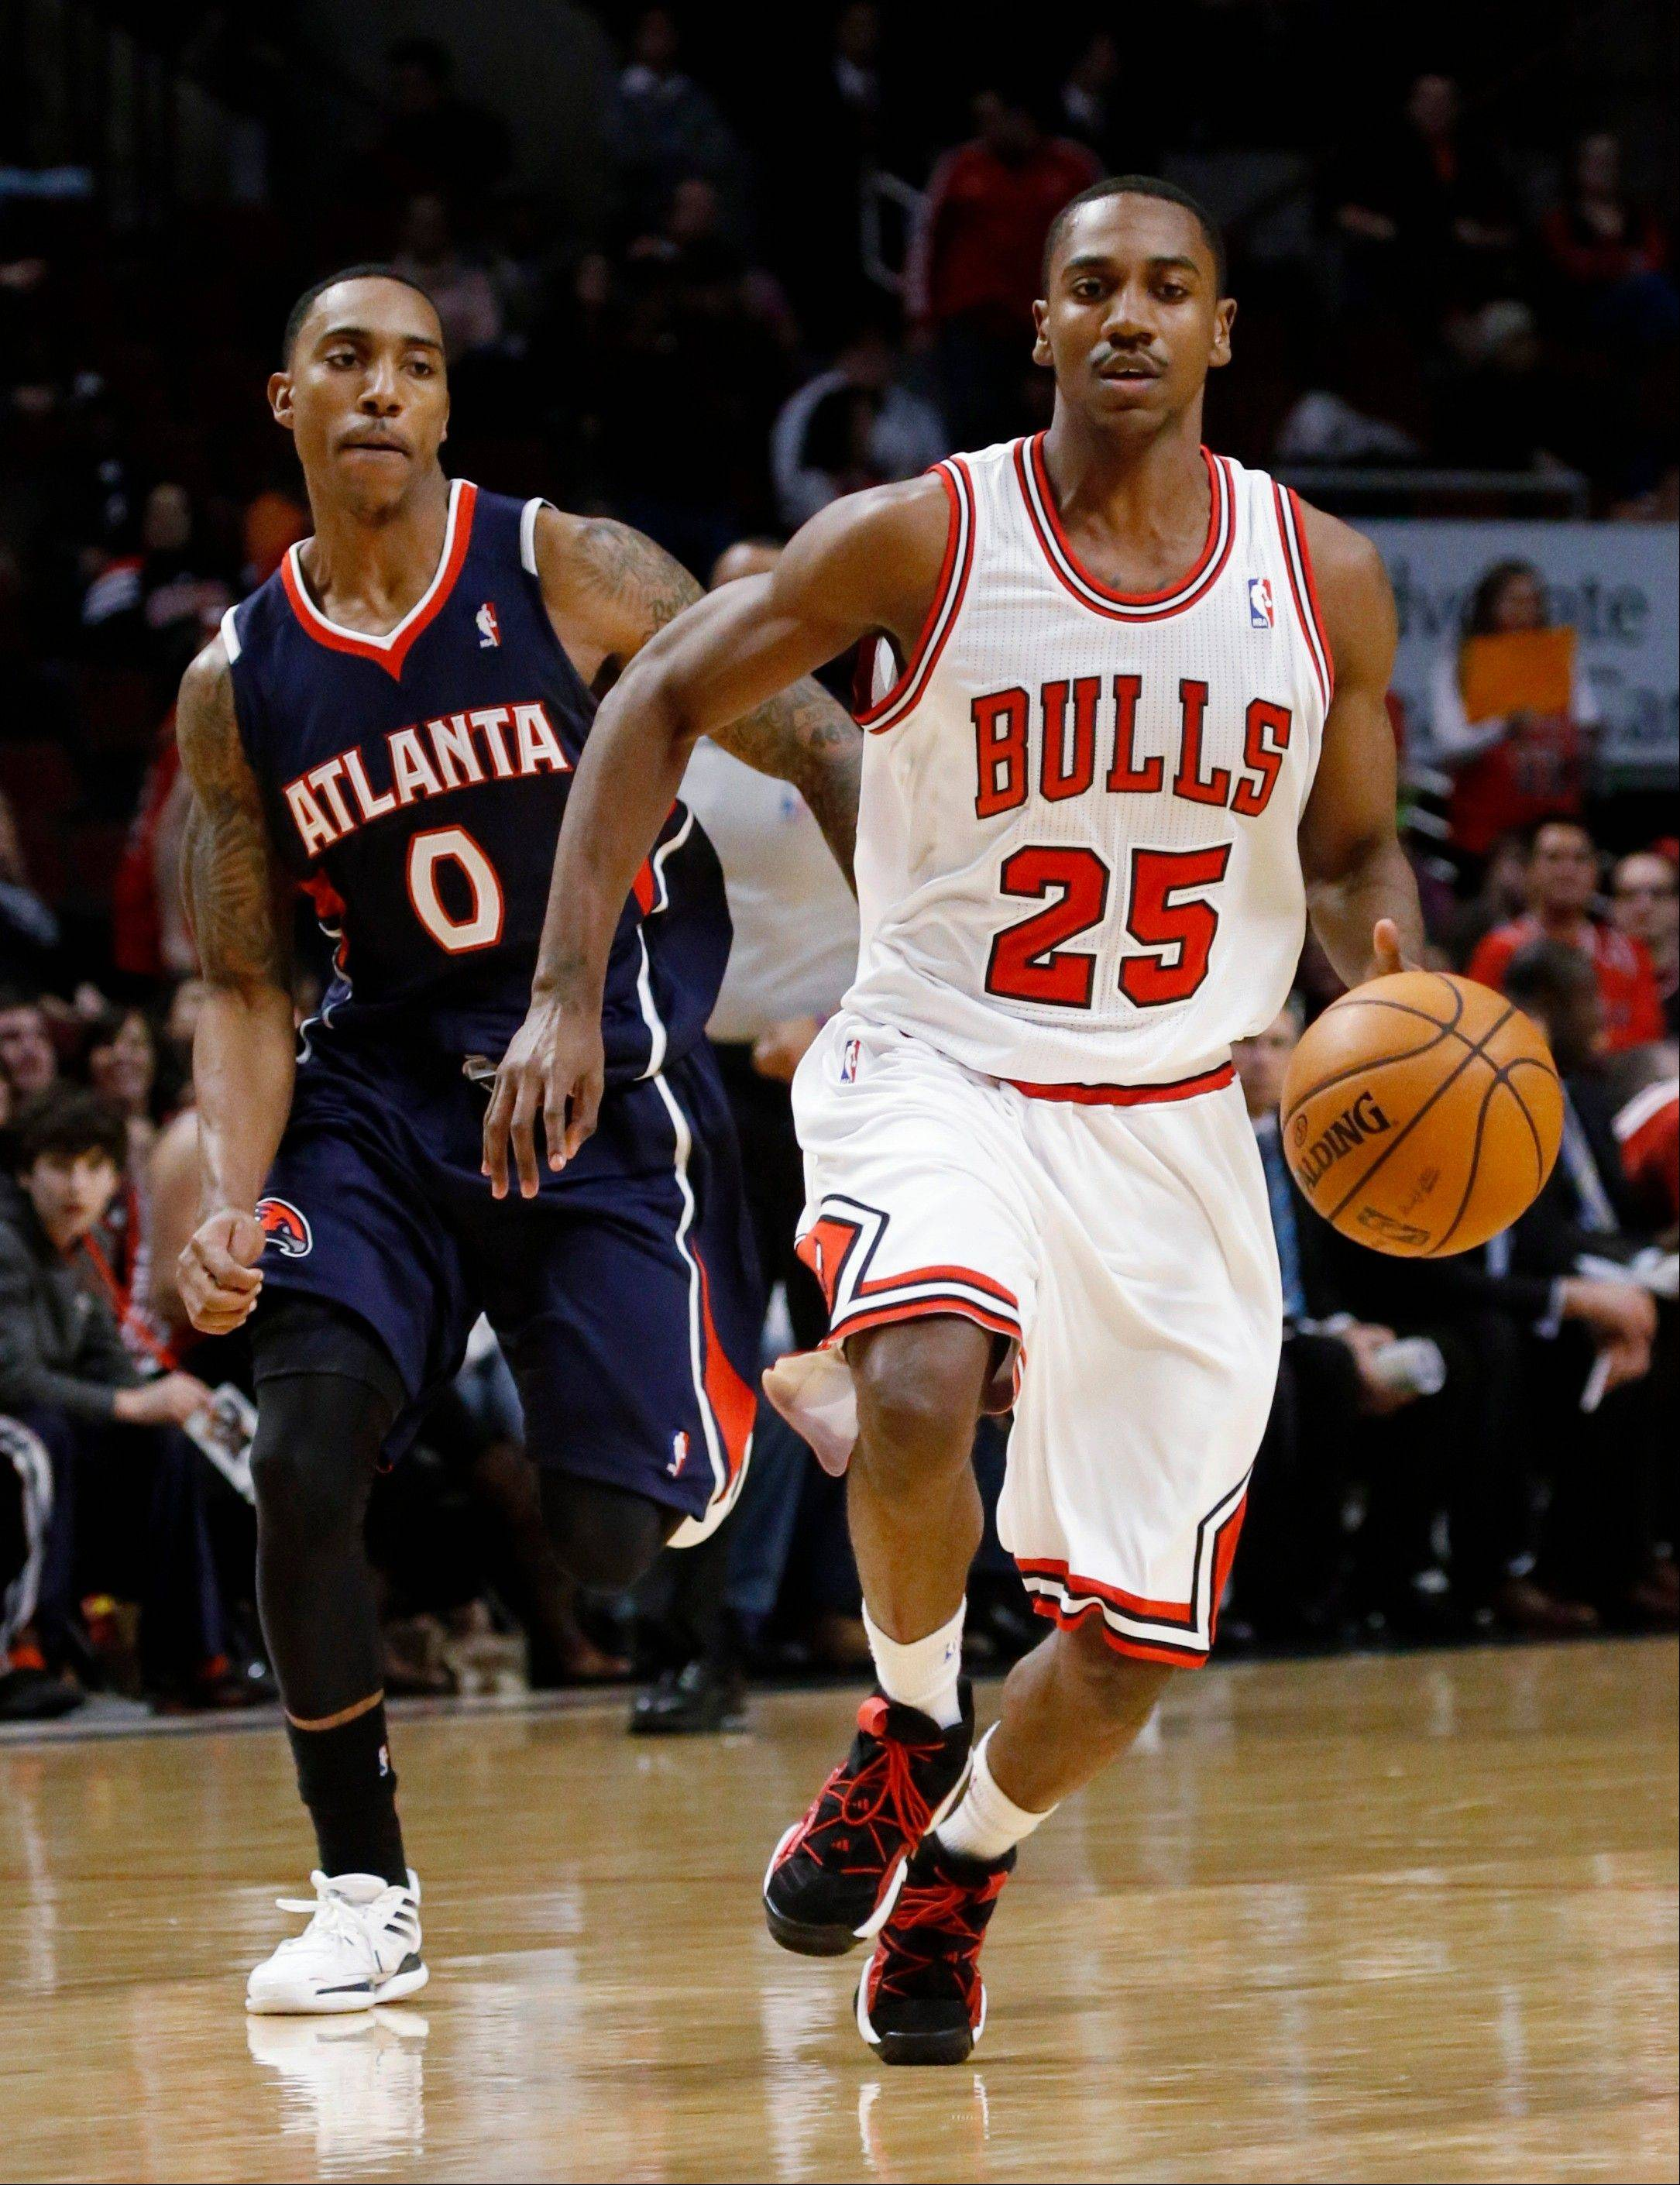 Bulls guard Marquis Teague drives past Atlanta Hawks guard Jeff Teague, his brother, during the second half of an NBA basketball game Monday, Jan. 14, 2013, in Chicago. The Bulls won 97-58.